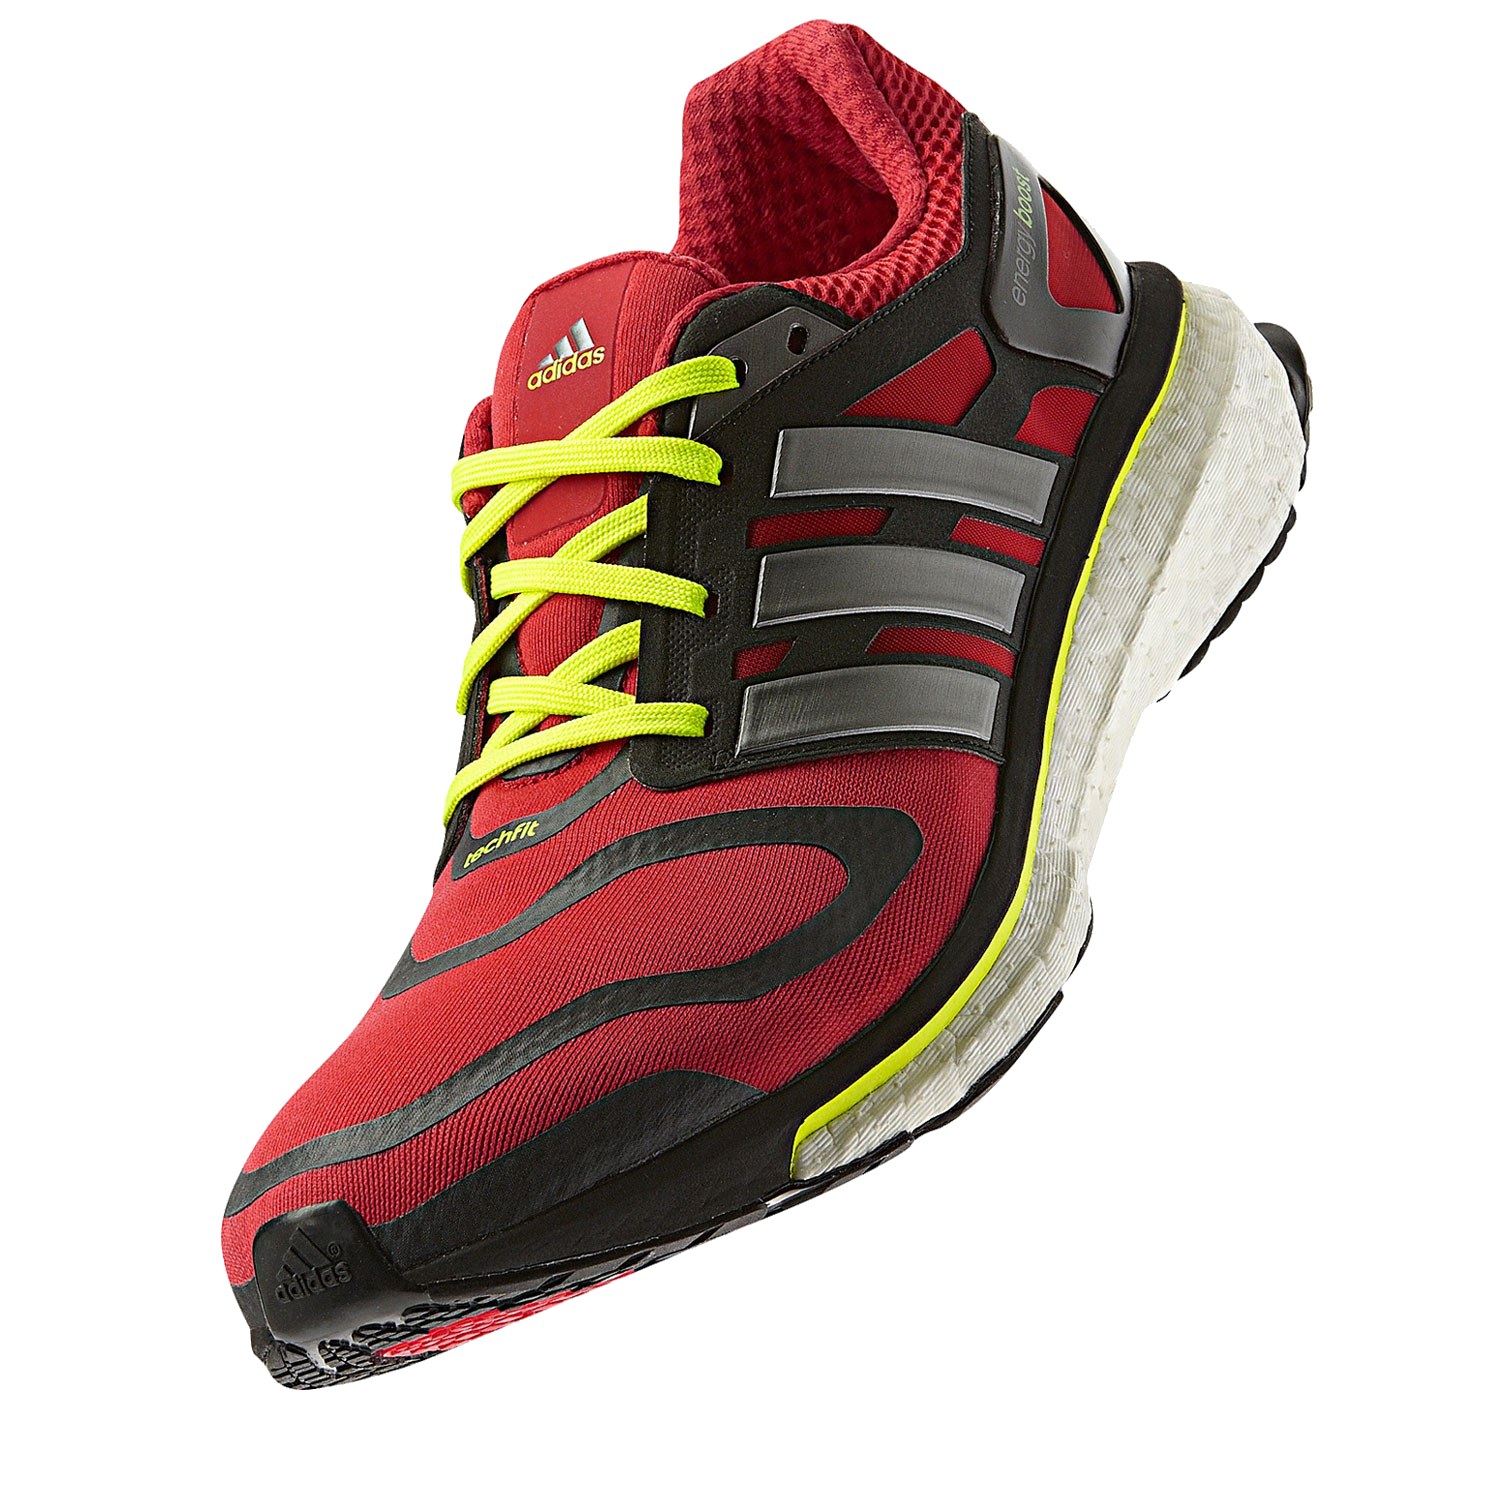 adidas shoes logo png. adidas shoes png picture png image logo